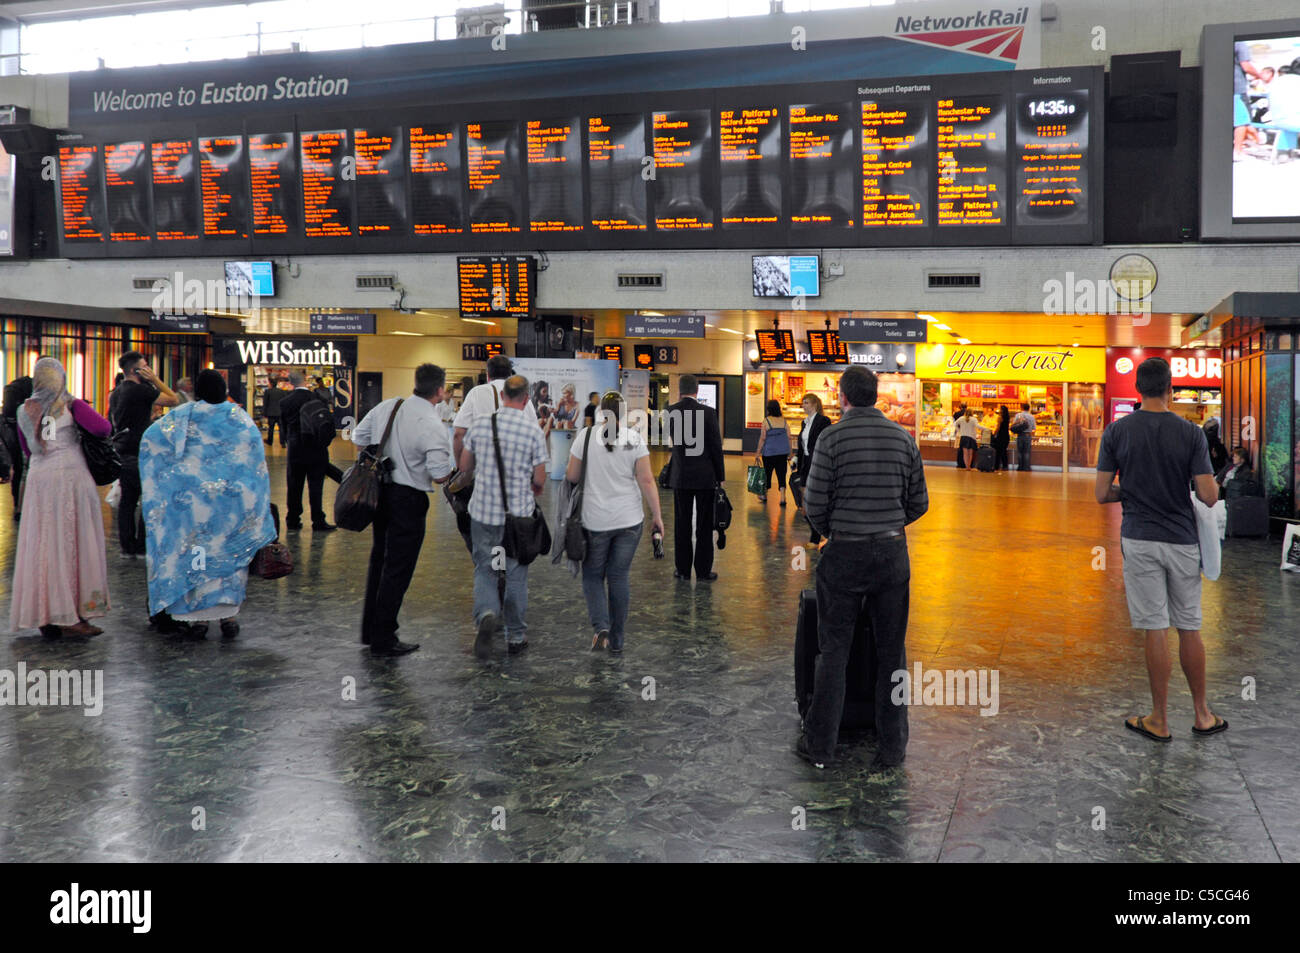 Euston train station concourse travellers viewing train departure board London England UK - Stock Image